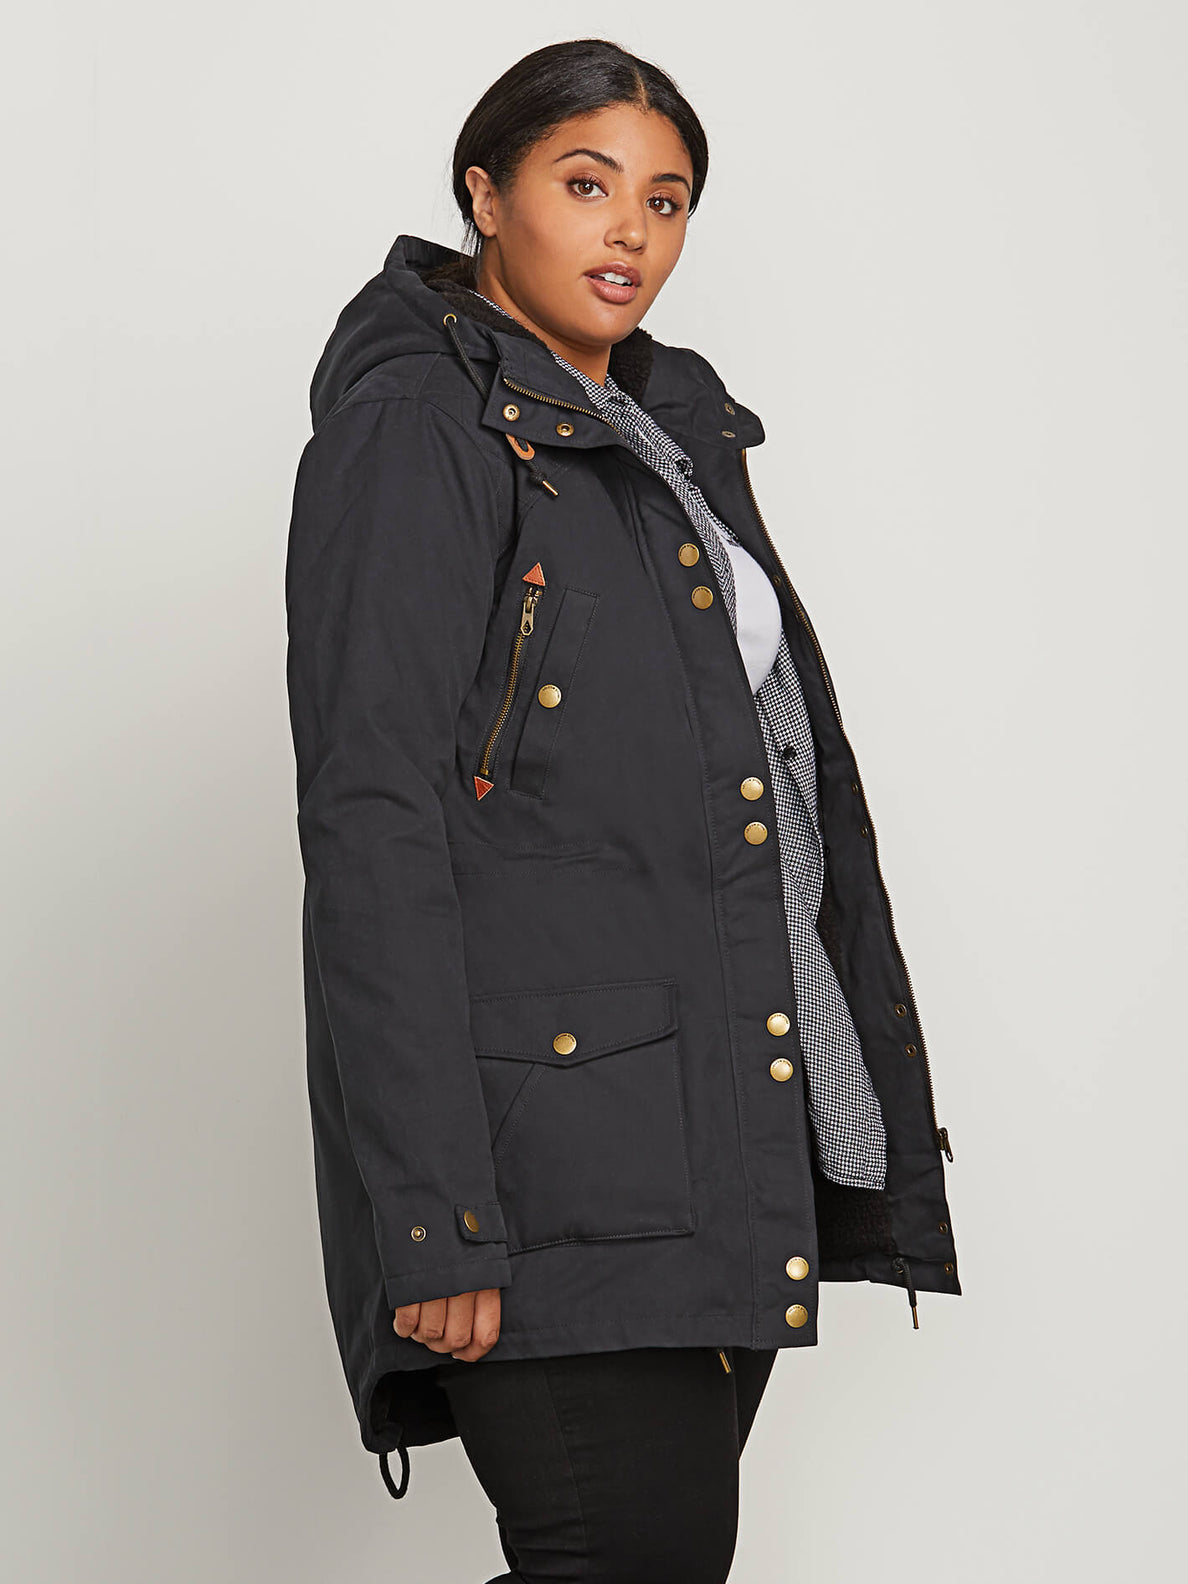 Walk On By Parka In Black, Front Plus Size View